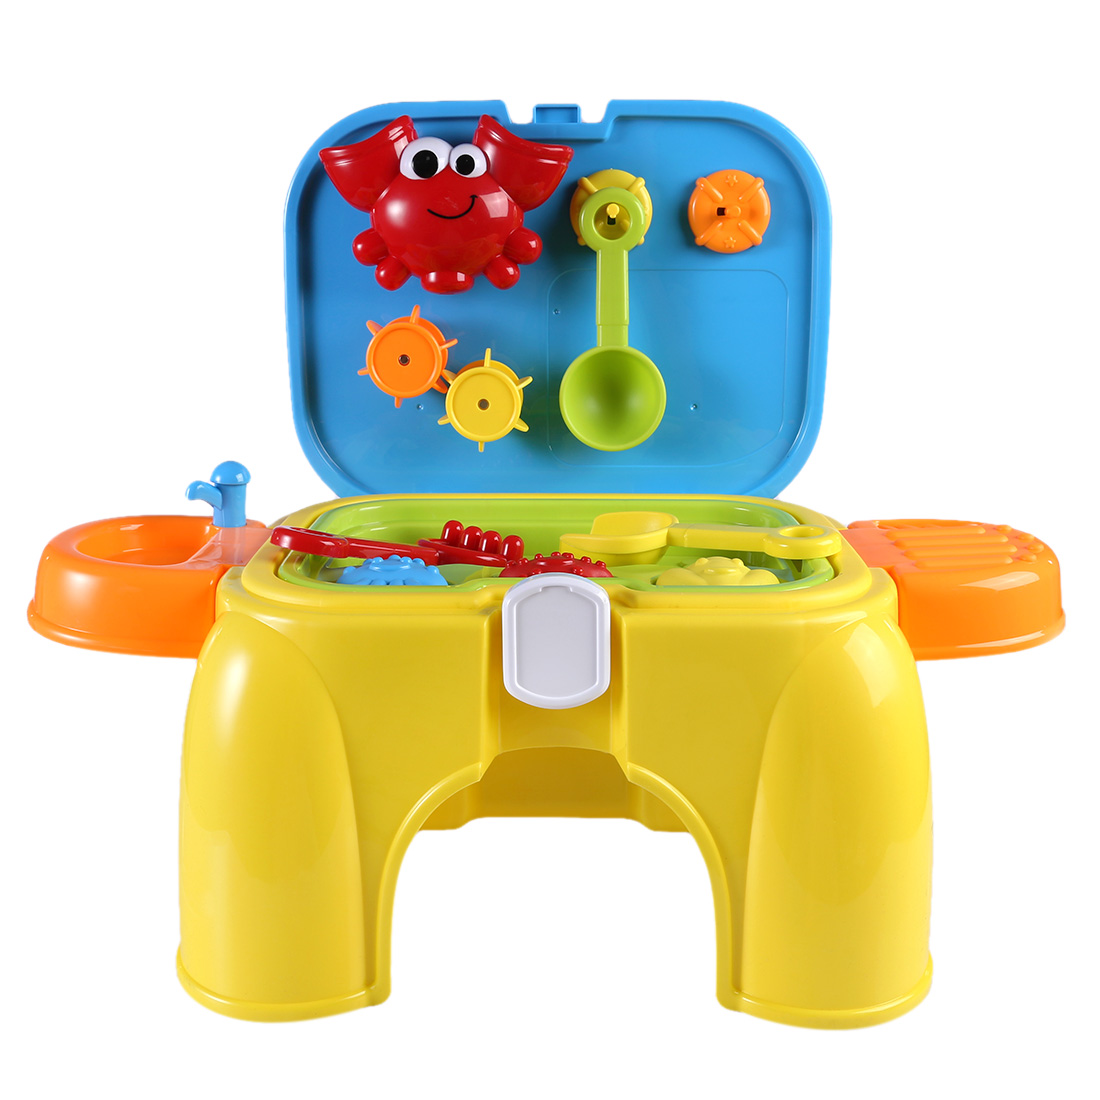 2019 Summer Kid Sand Beach Toys Pretend Play with Retractable Storage Chair Educational Toys Toy Board toys for beach Play Sand